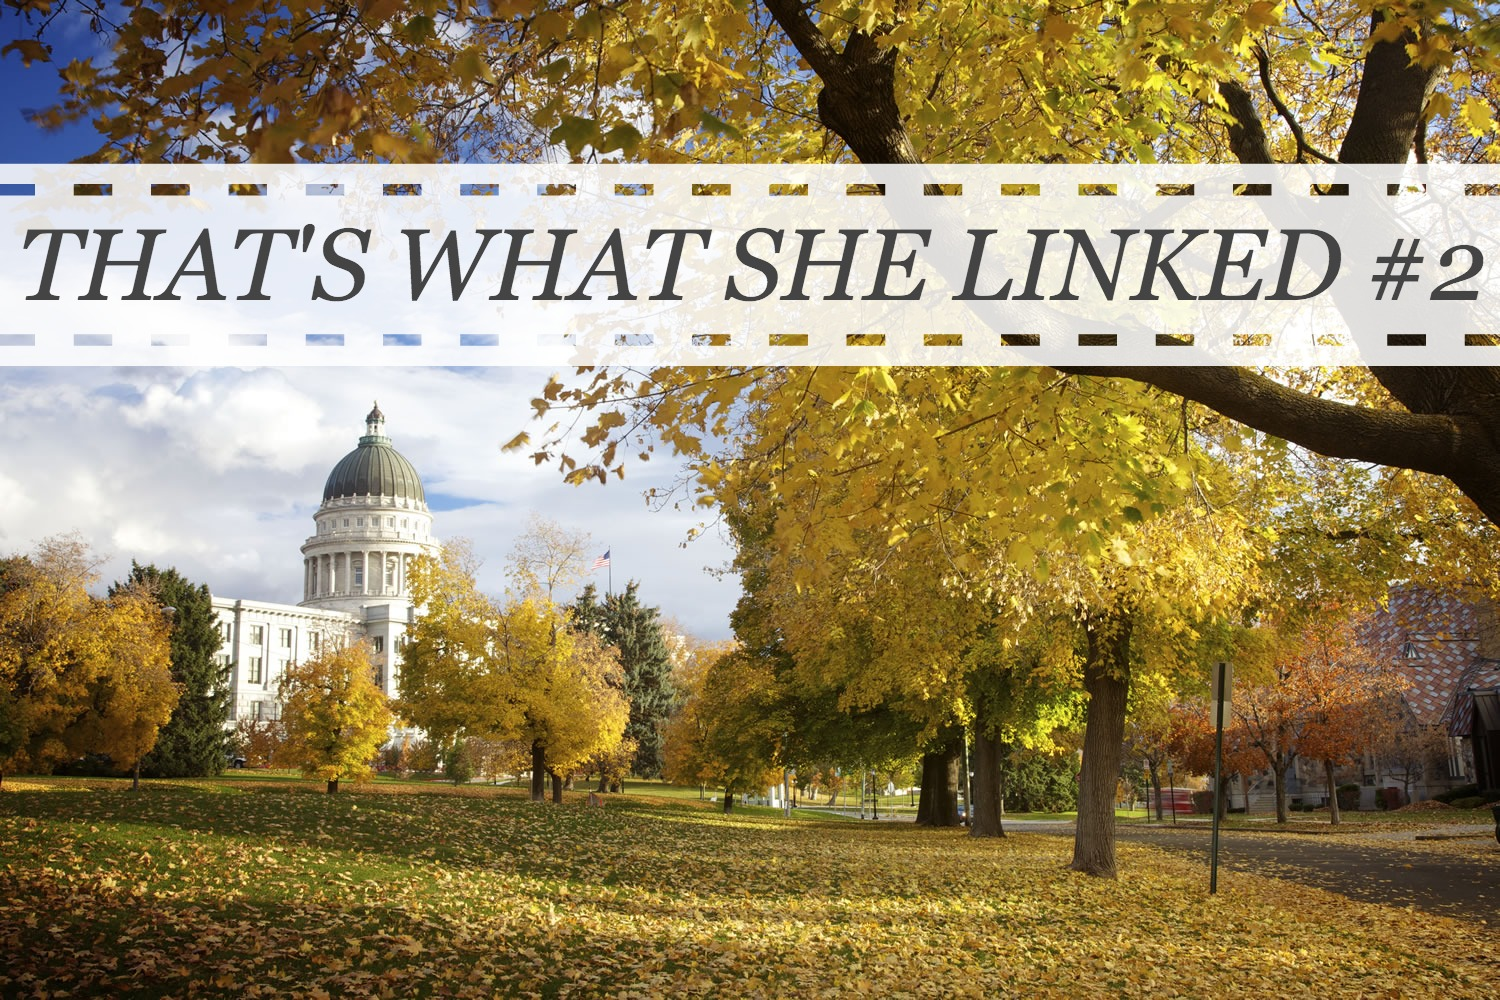 That's What She Linked #2